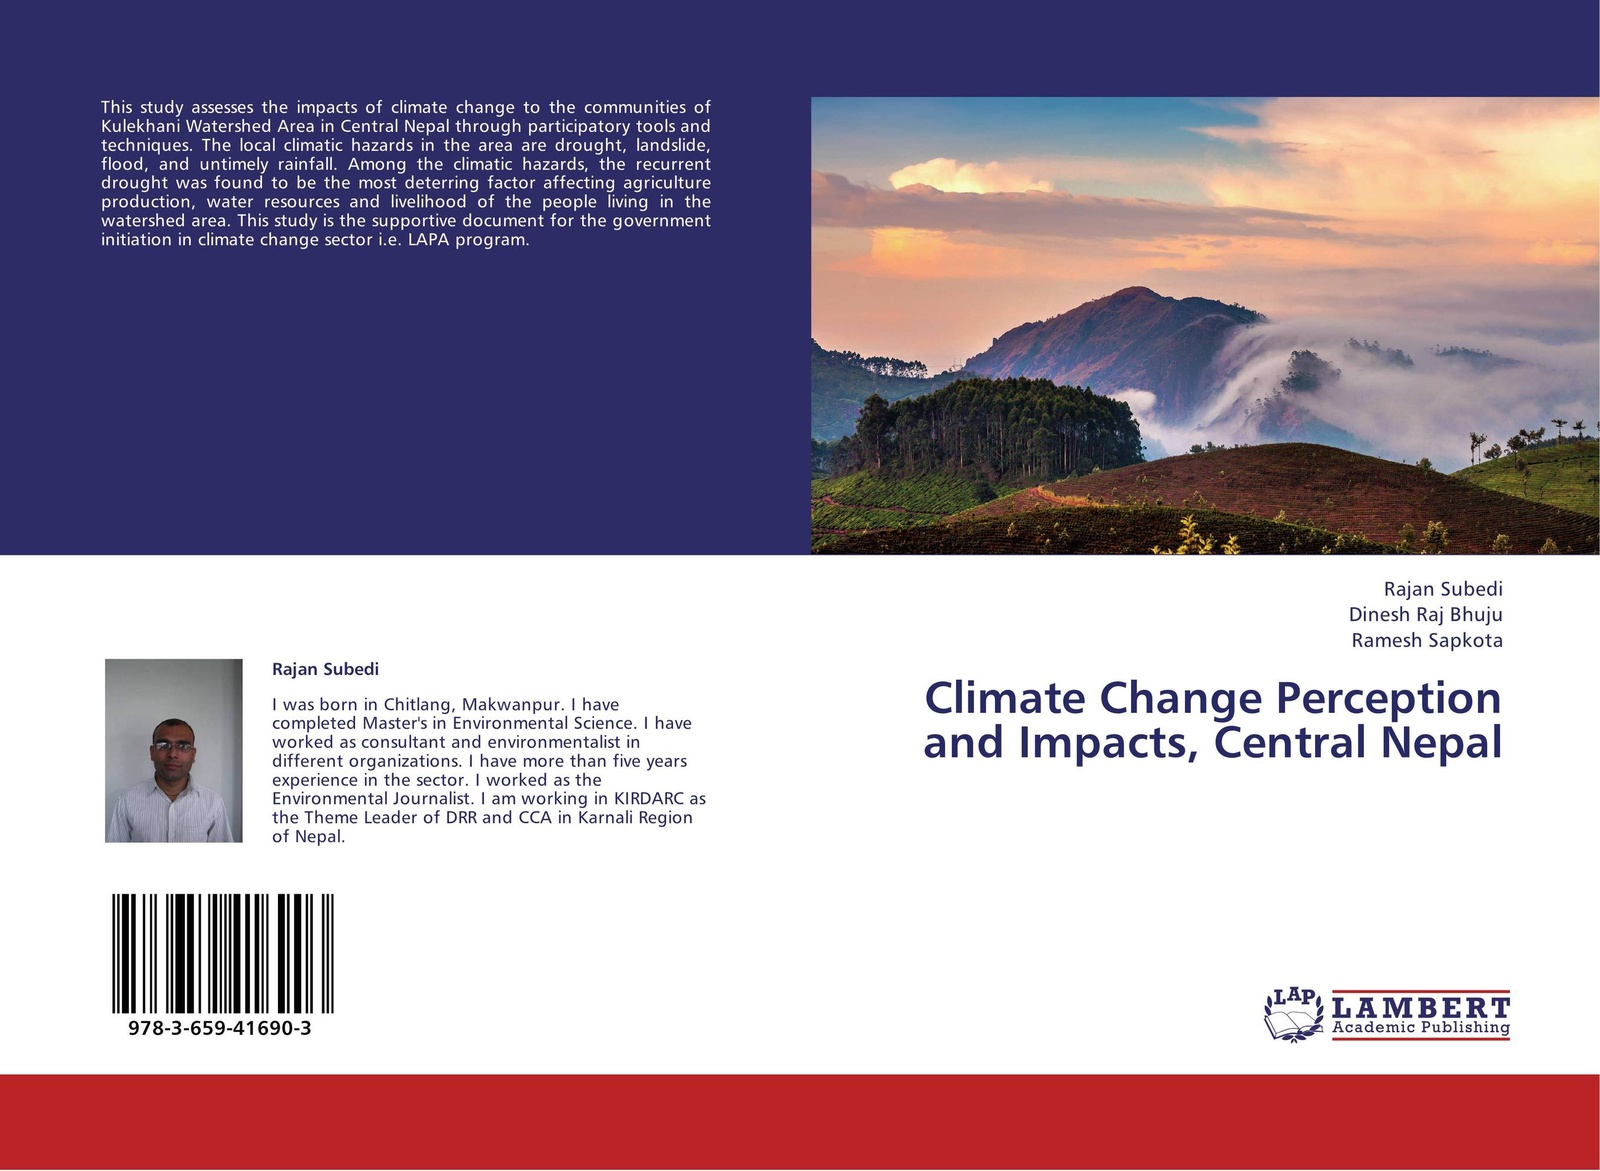 Rajan Subedi,Dinesh Raj Bhuju and Ramesh Sapkota Climate Change Perception and Impacts, Central Nepal michio kumagai climatic change and global warming of inland waters impacts and mitigation for ecosystems and societies